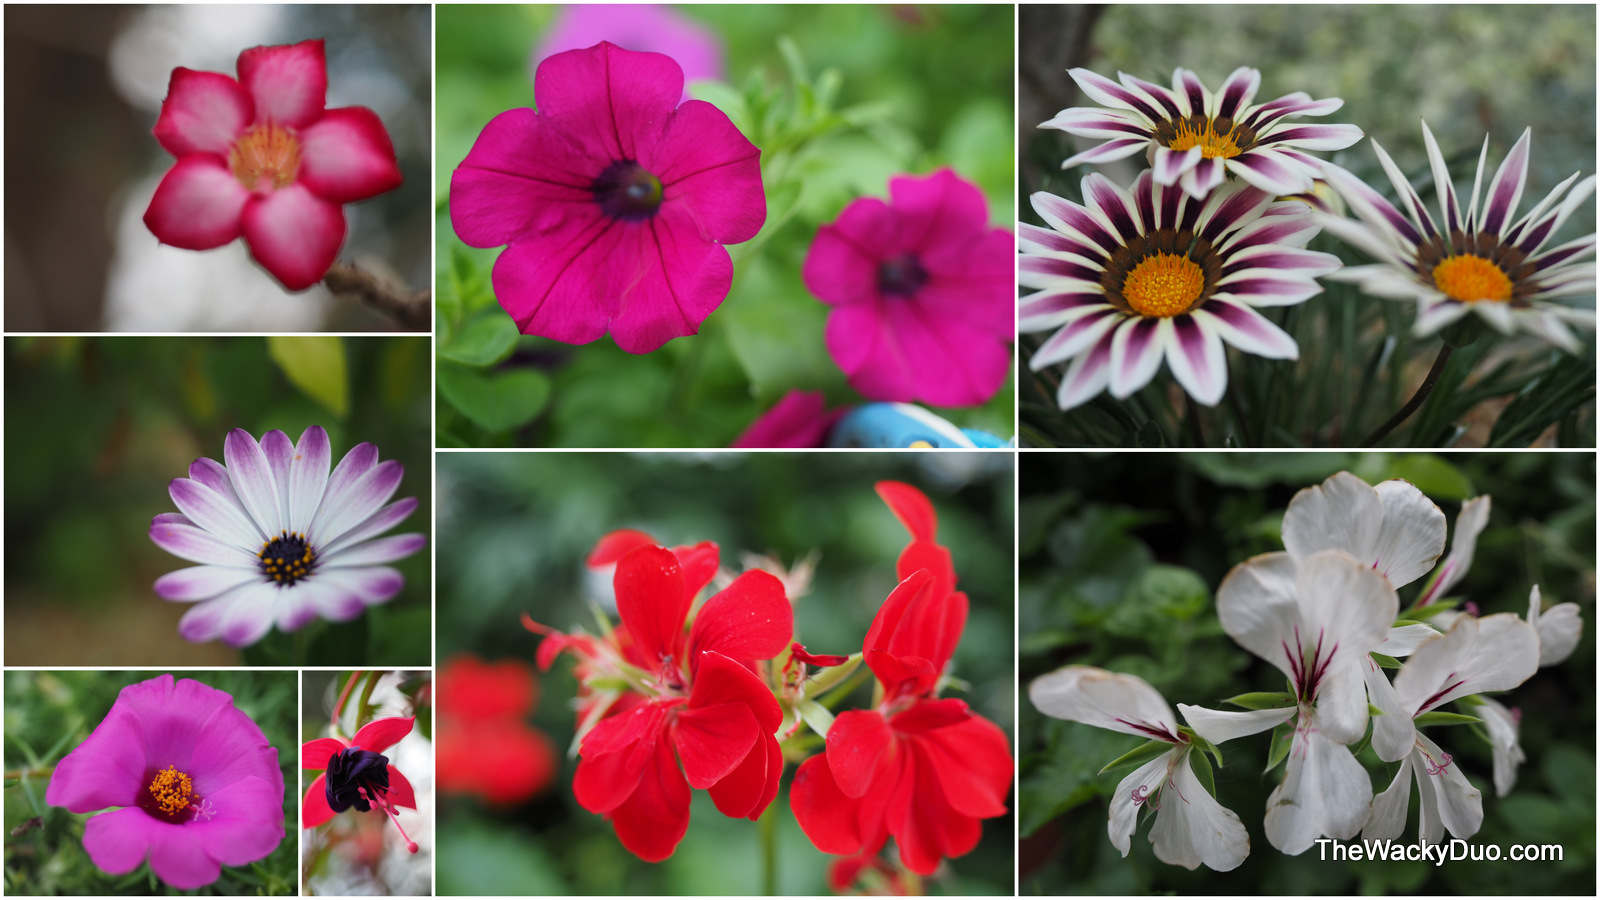 Another Thing To Look Out For Are The Blooming Flowers Around The Garden.  Take A Closer Look While You Are There. There Are Plenty Of Beautiful  Blooms At ...